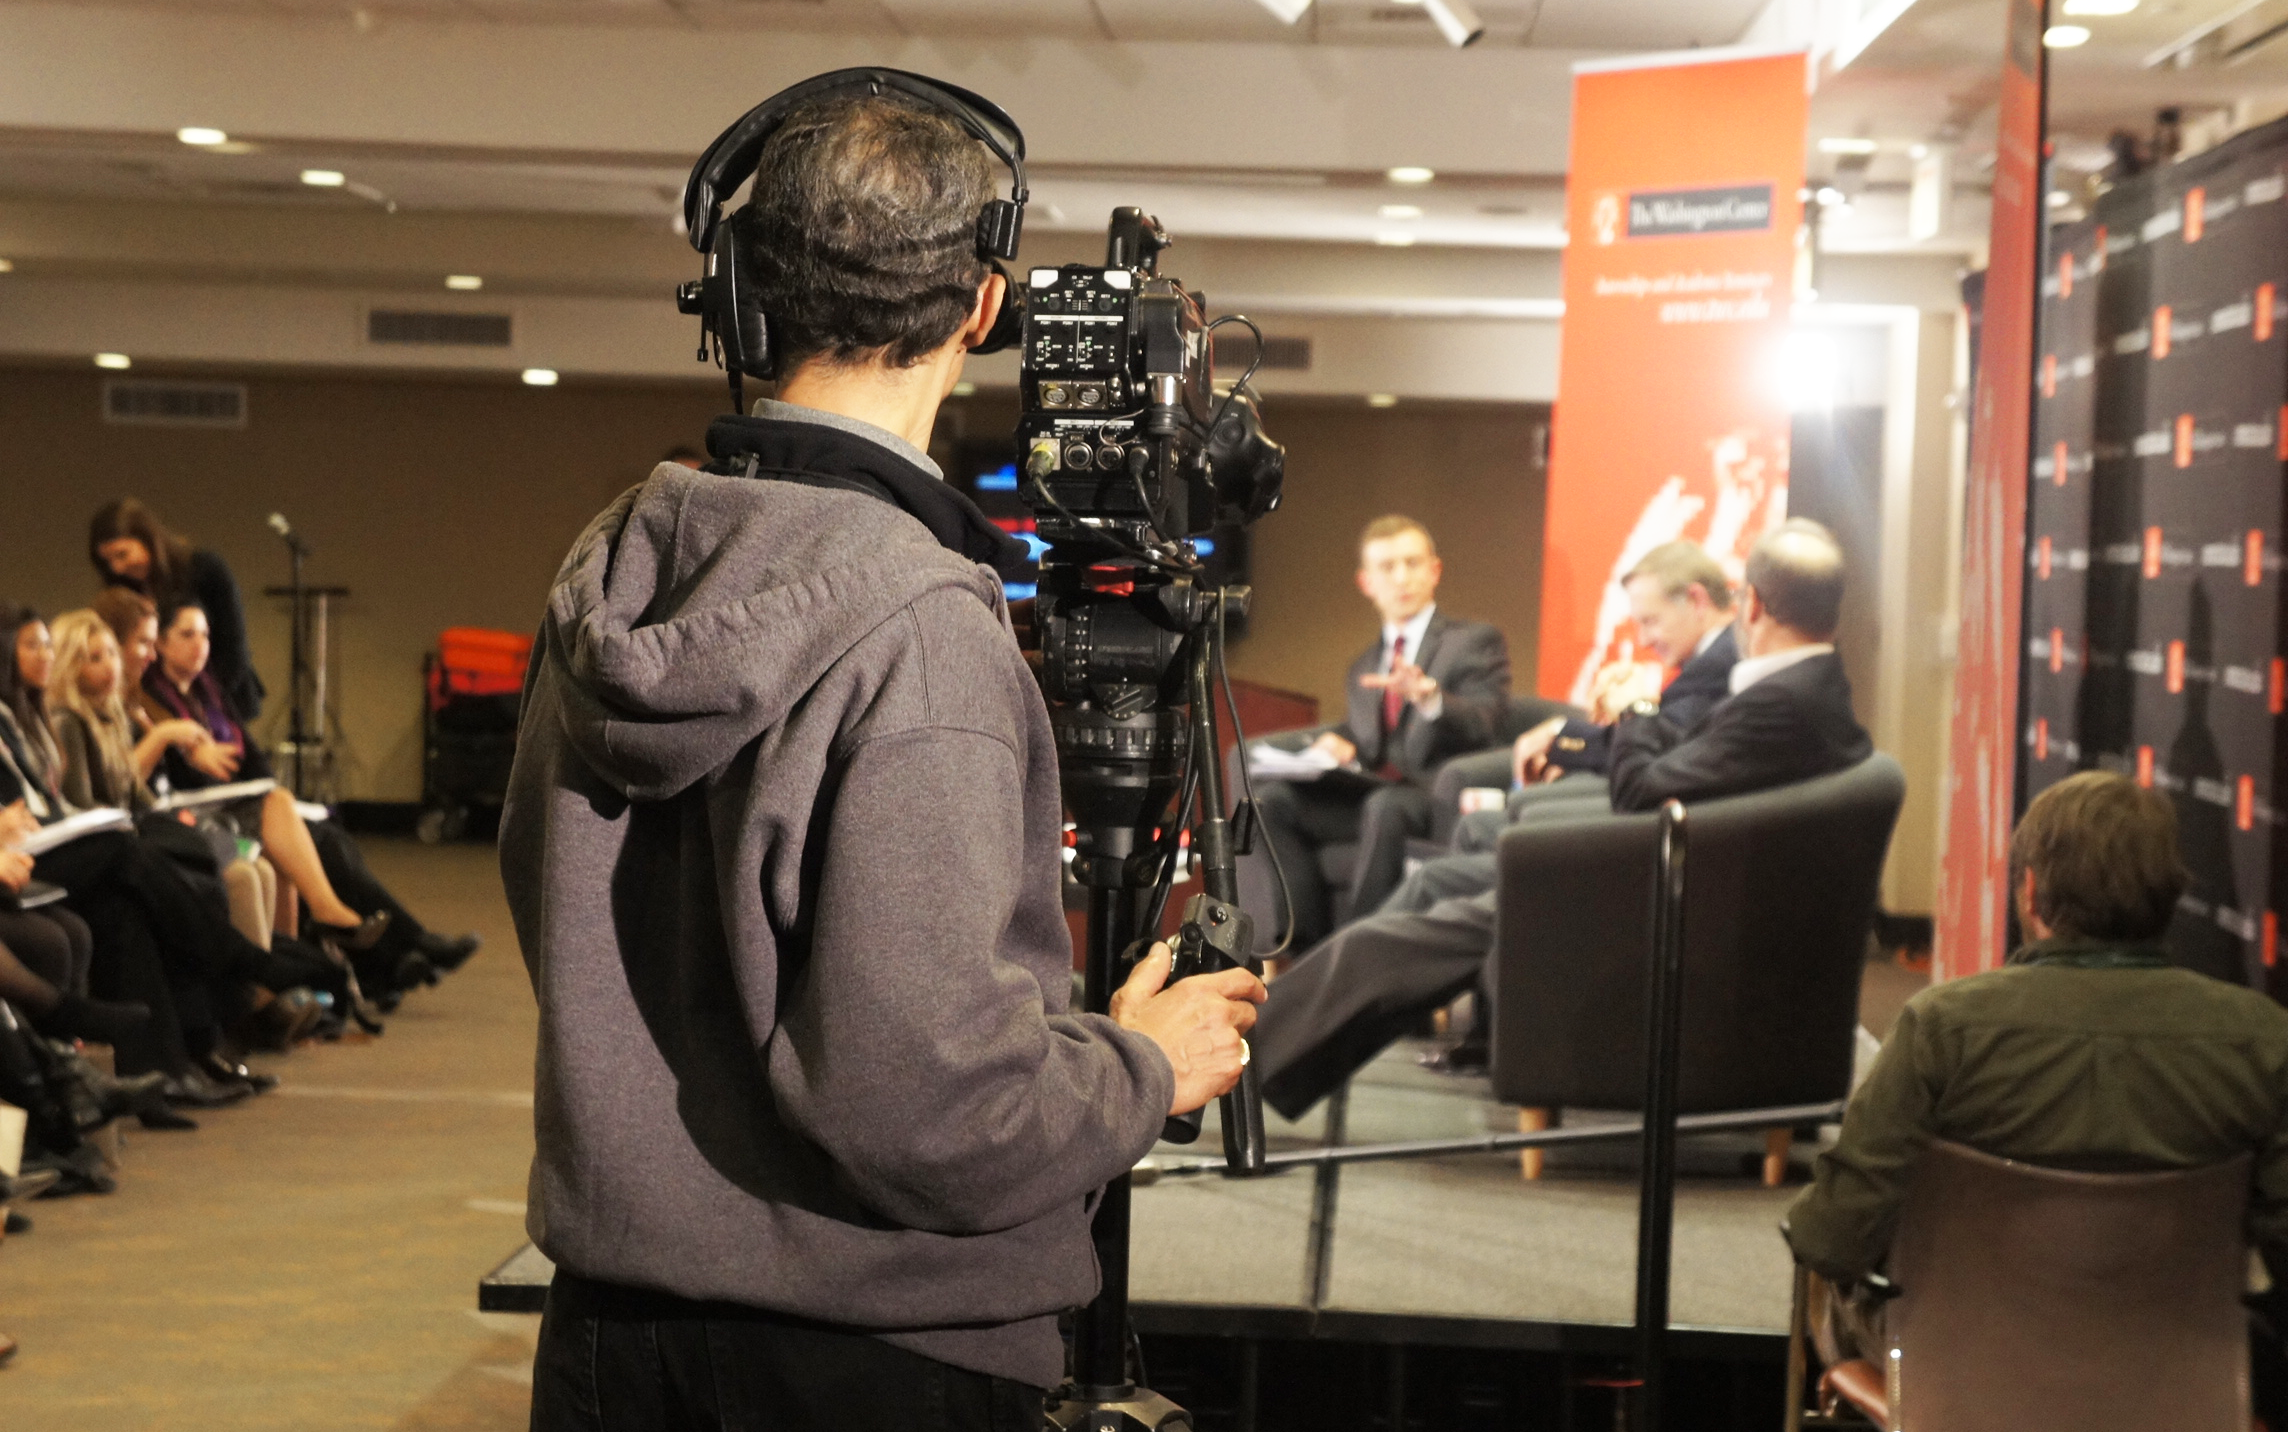 C-SPAN recording a panel discussion during week 1 of the seminar